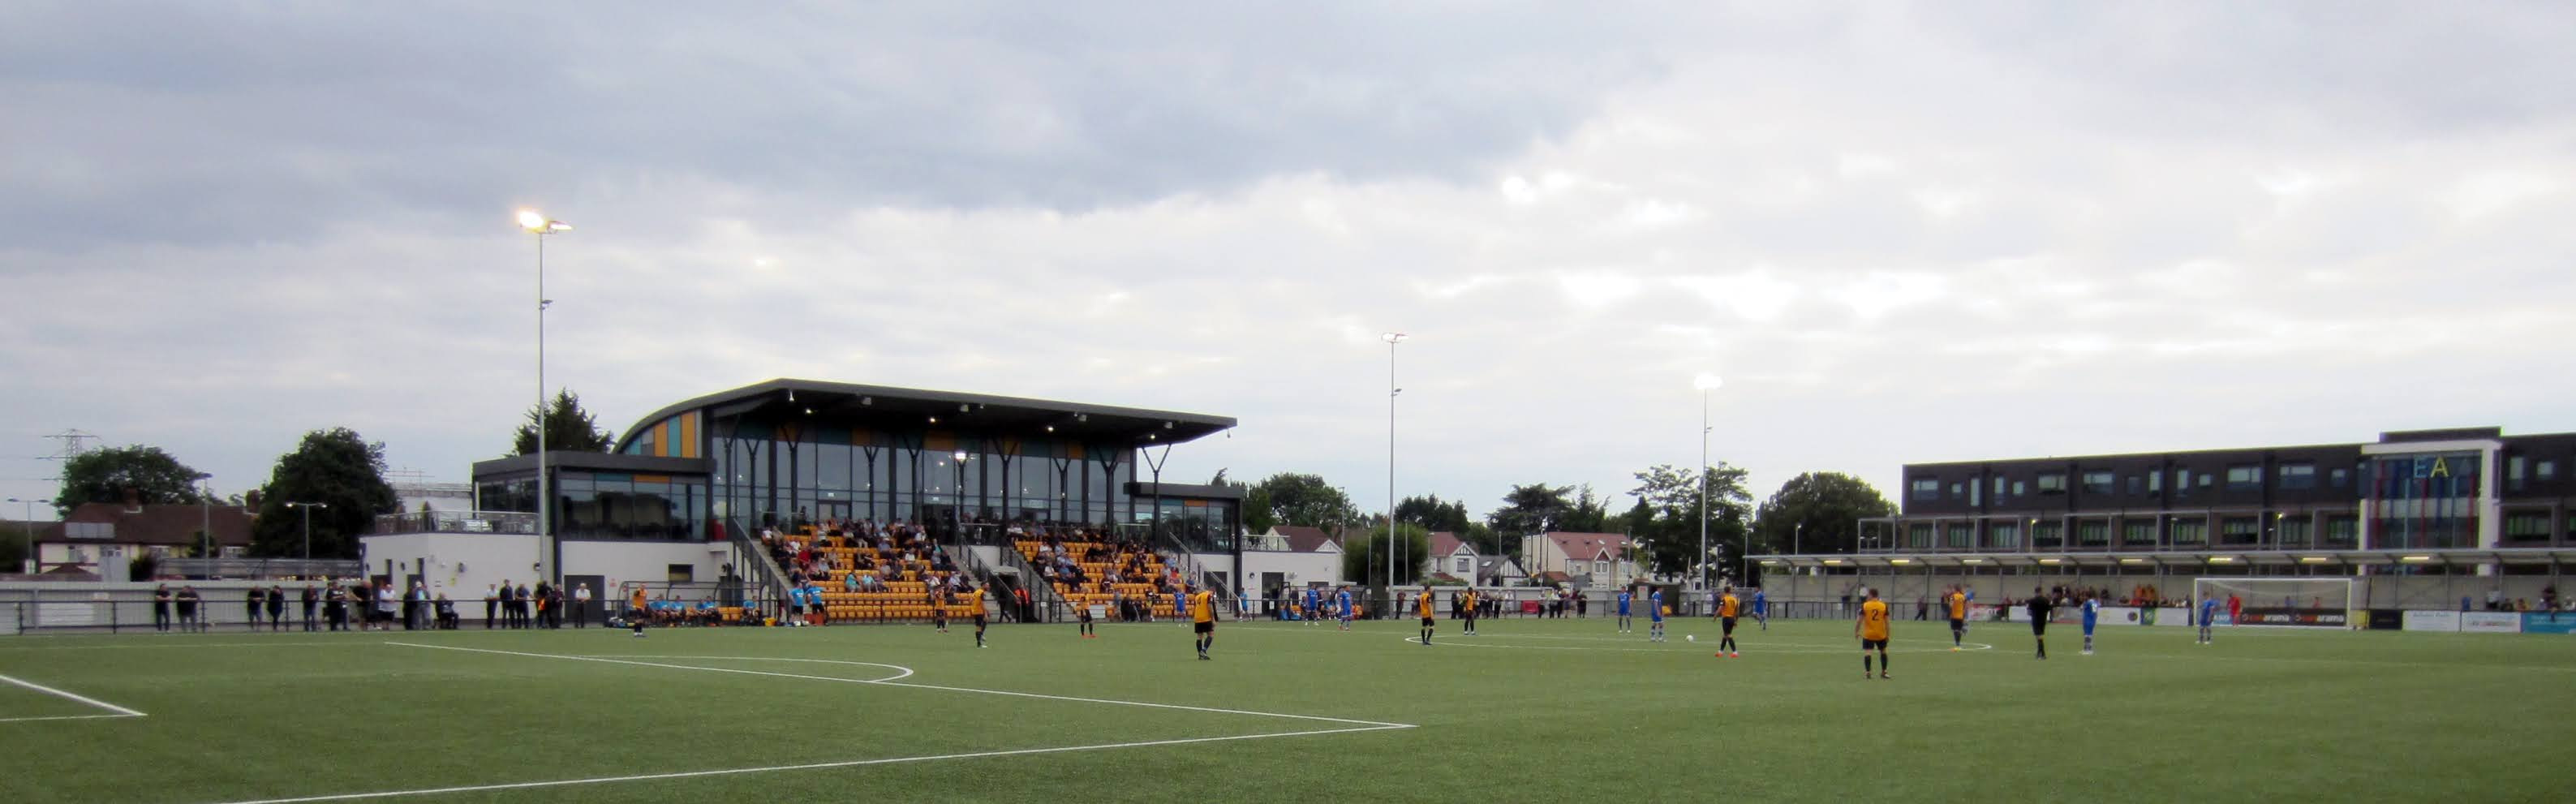 Main stand at Arbour Park, Slough